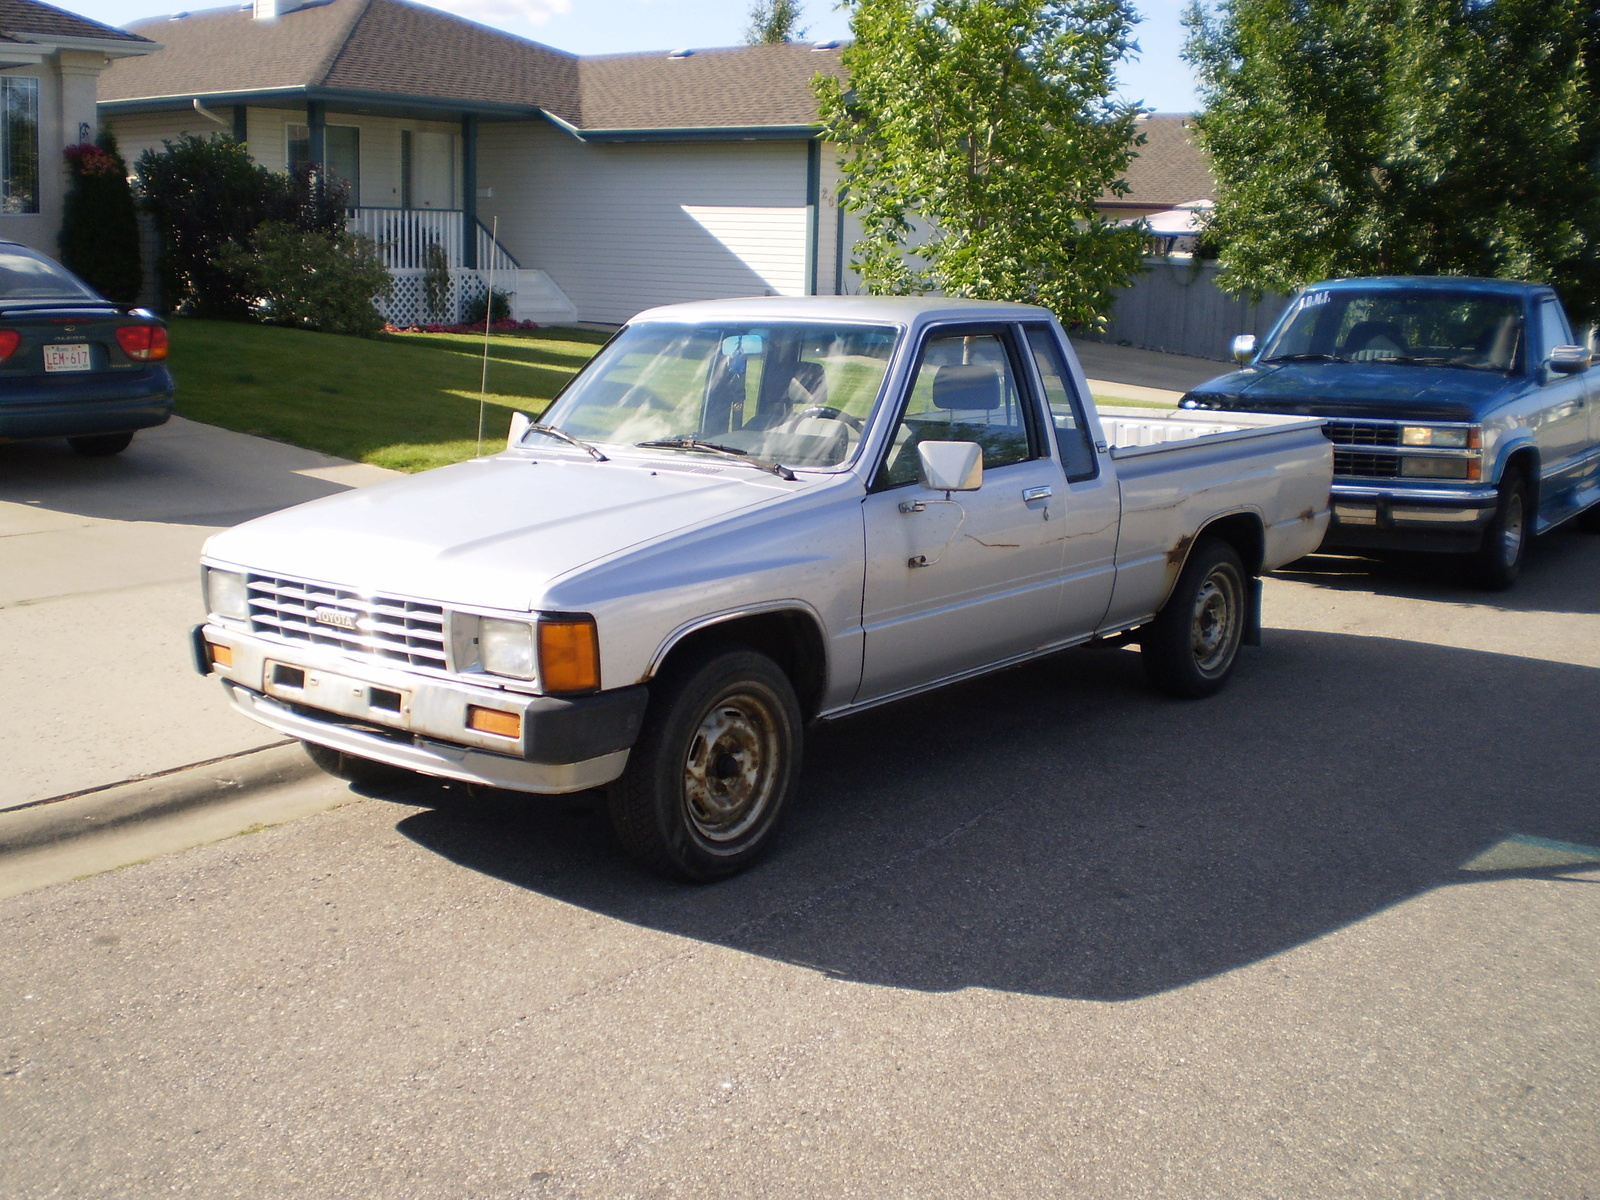 4 furthermore 210529 1987 Toyota Sr5 5 Speed Manual Sr5 Cab   Chassis 2 Door Extra Cab 4 Wheel Drive additionally 2012 1 Series coupe besides 1338172 also Search. on 1991 toyota sr5 4wd pick up with extra cab